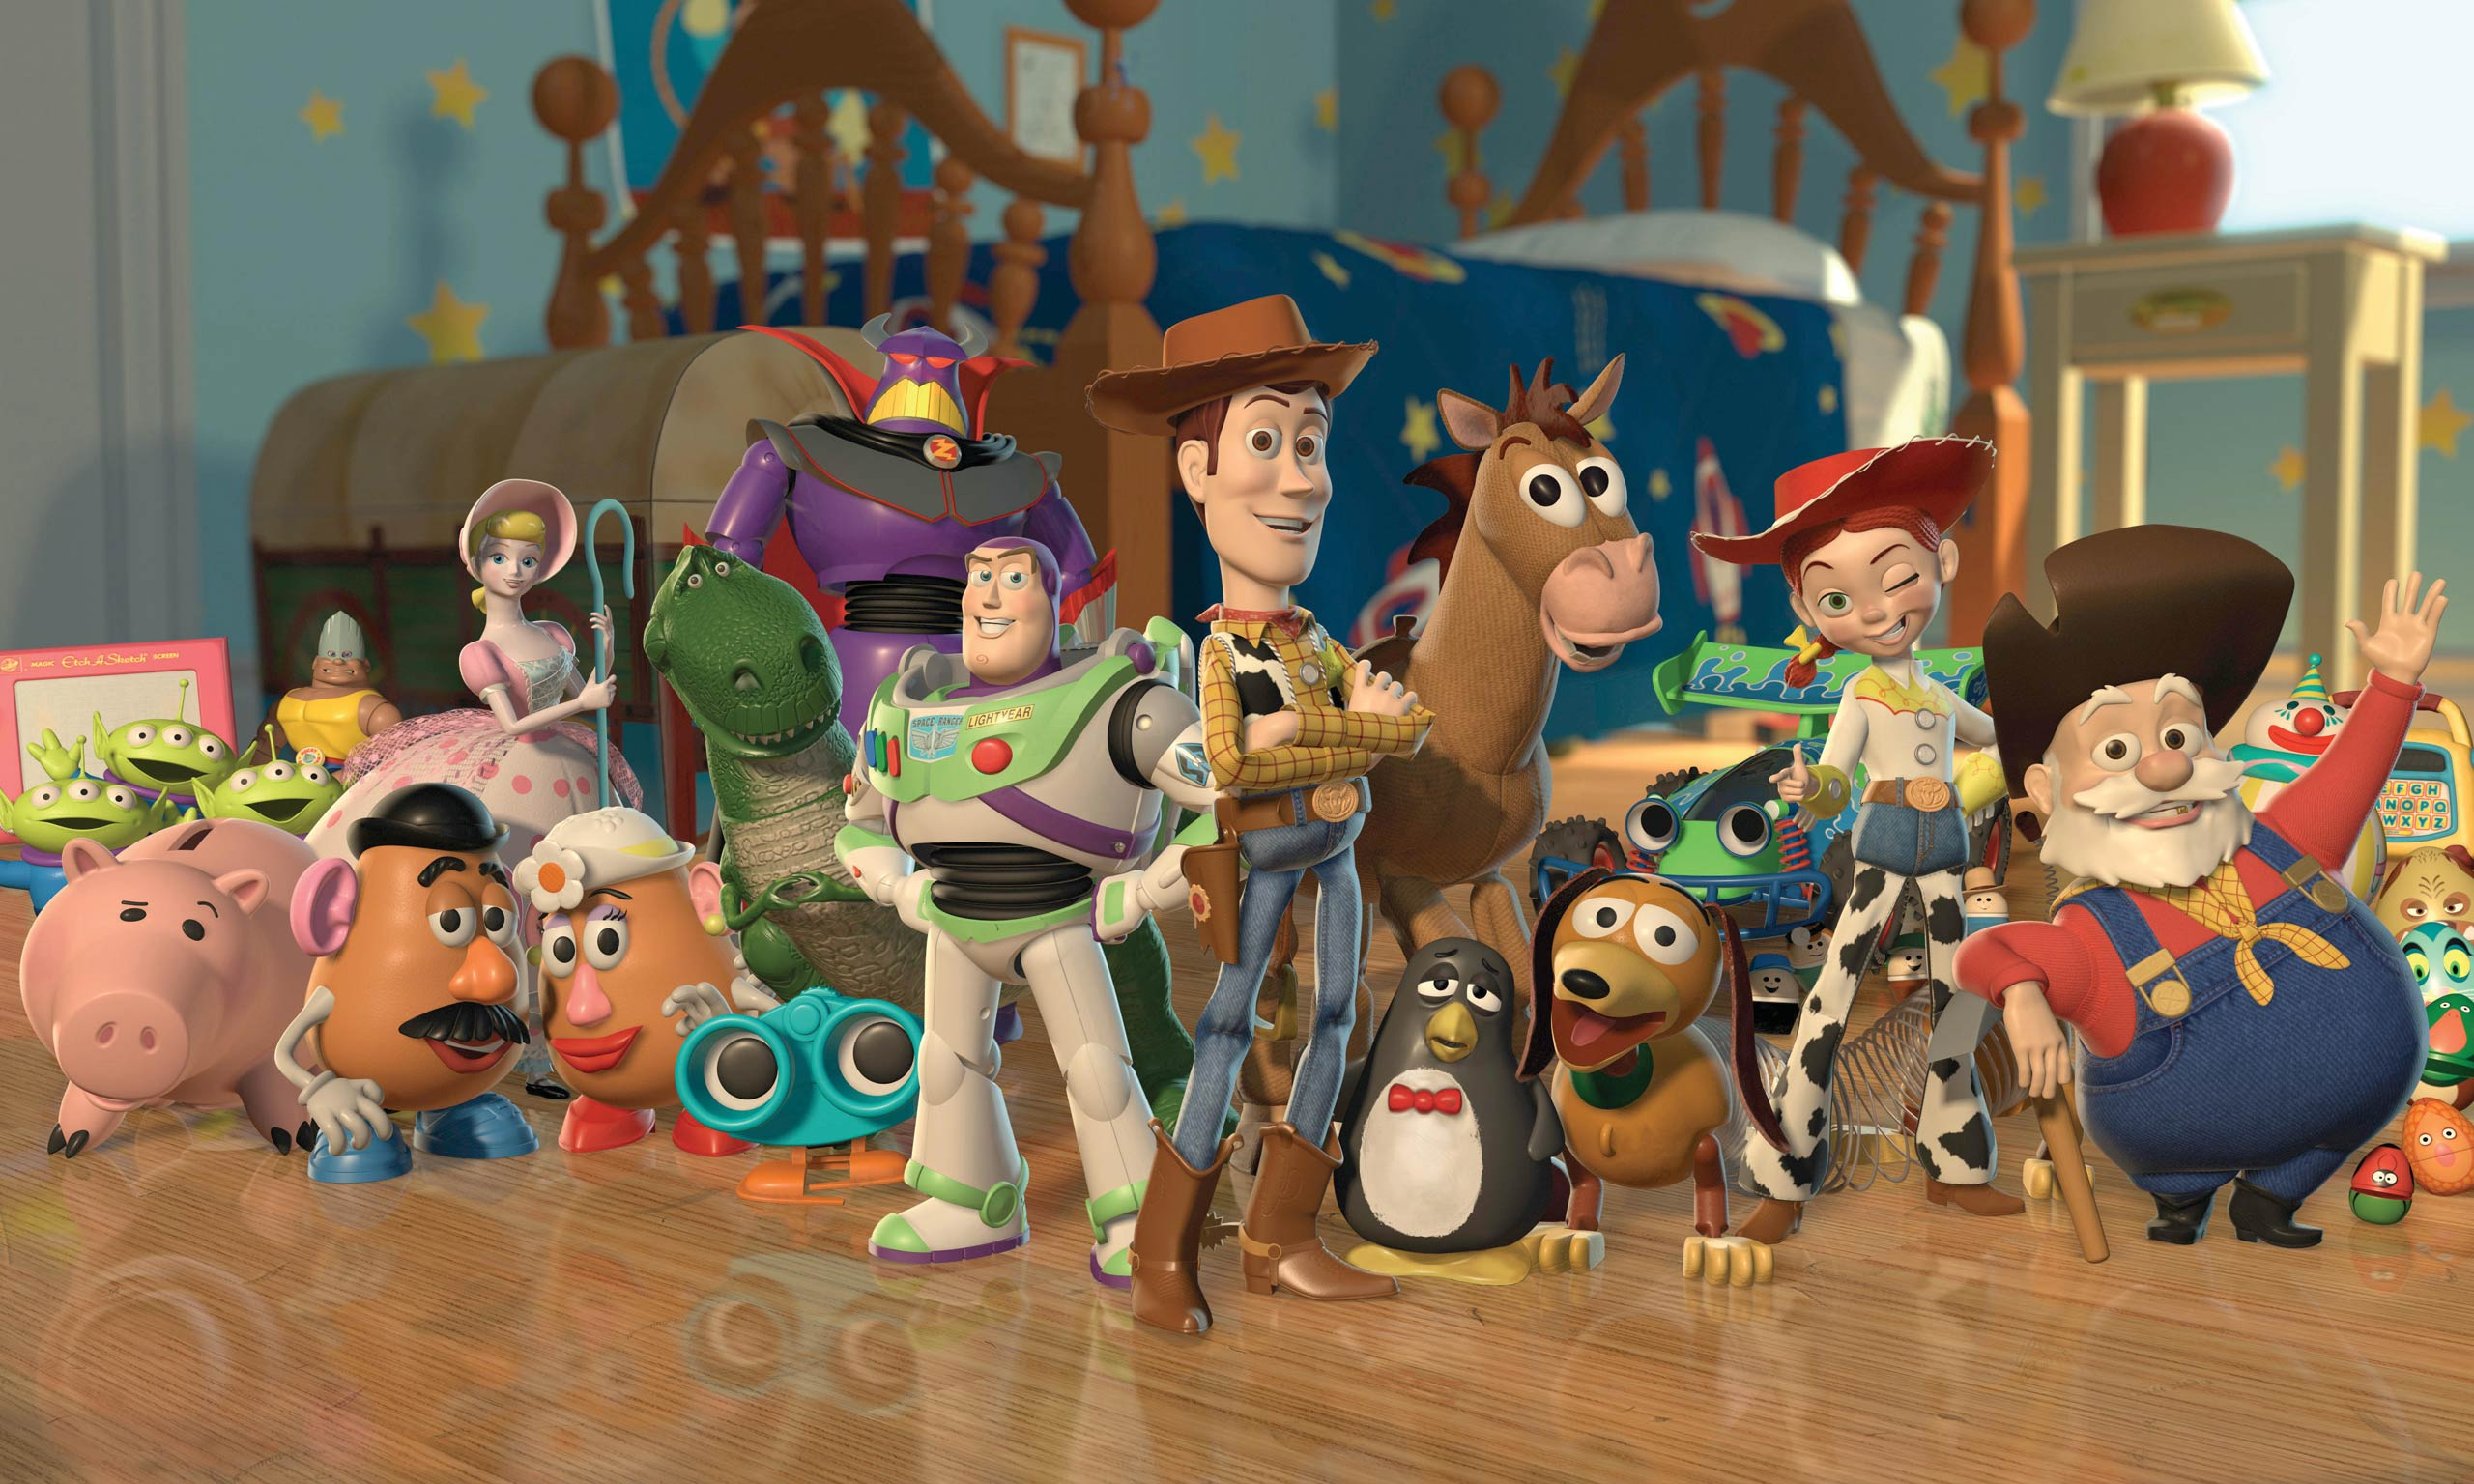 <strong><i>Toy Story 2</i></strong> In Pixar's 1999 follow-up to <i>Toy Story</i>, Woody, a cowboy doll voiced by Tom Hanks, is stolen – and his ragtag crew of fellow toy friends vow to get him home safely.